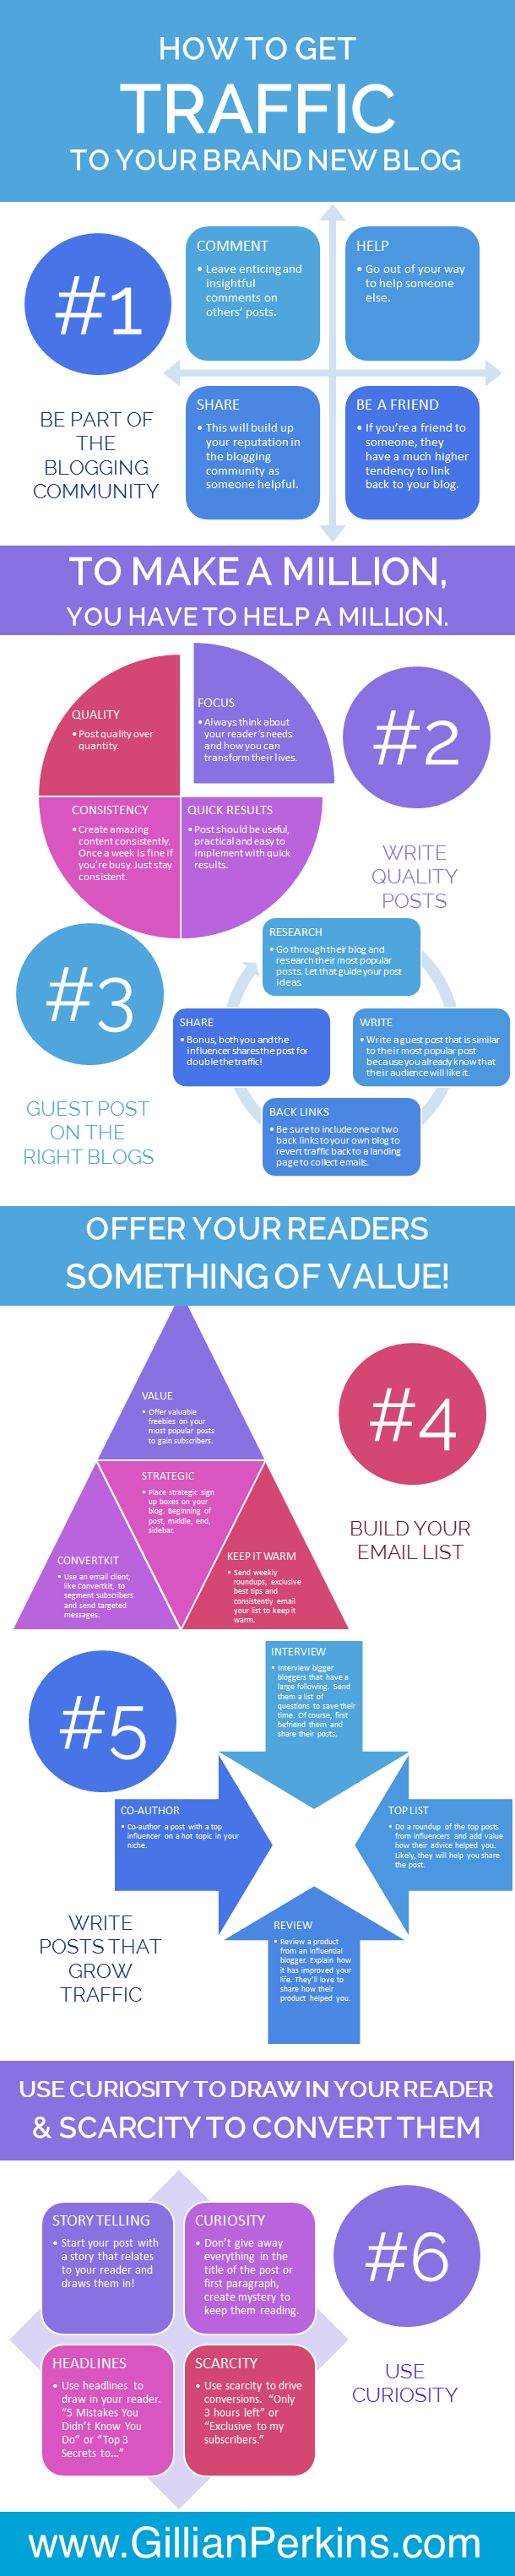 How to Get Traffic for a New Blog Infographic